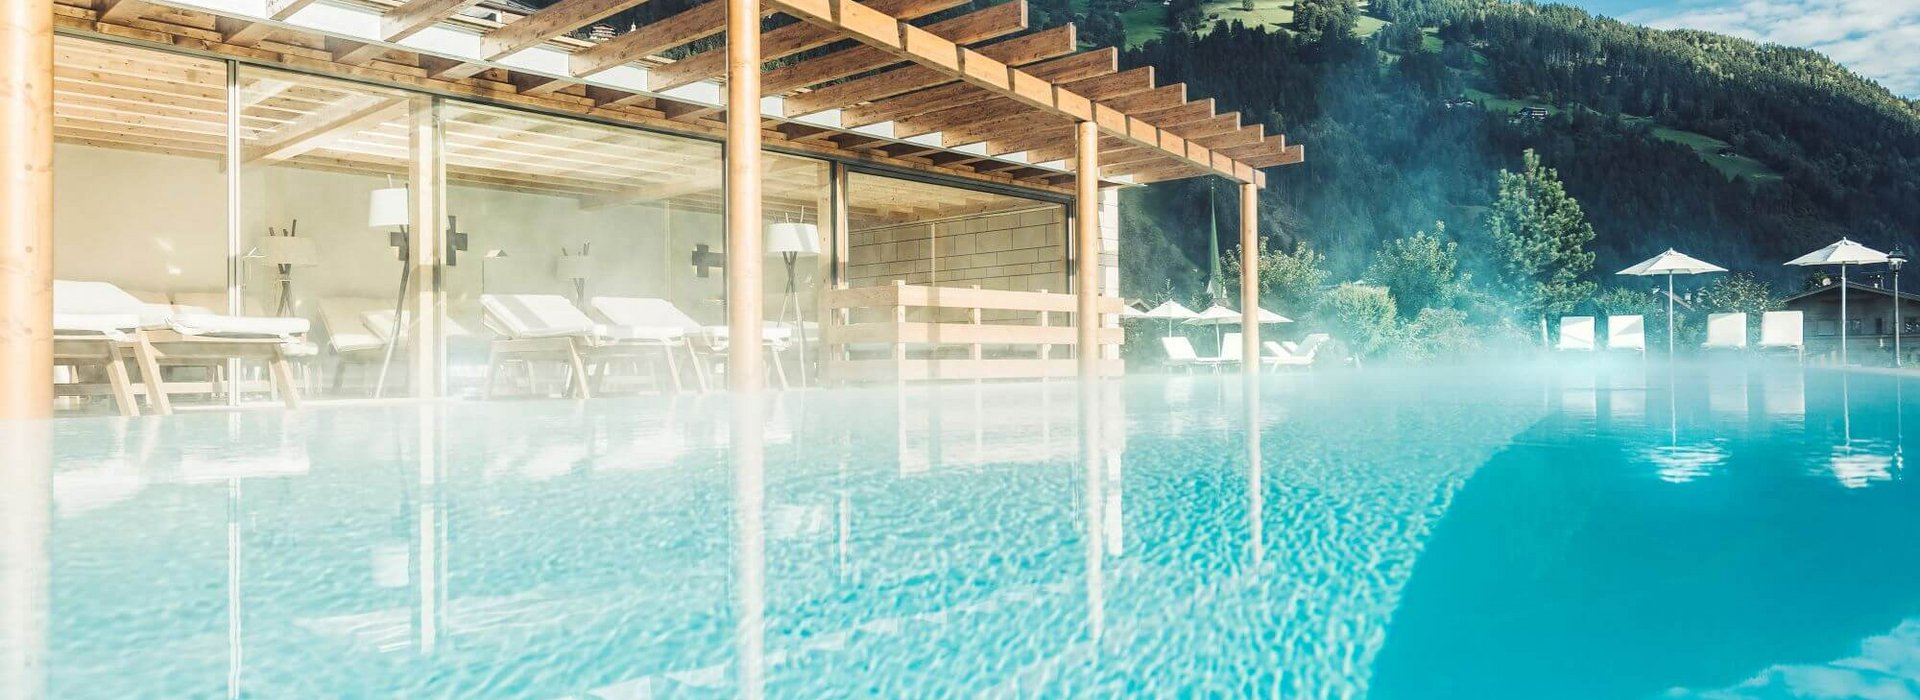 Poolanlage Wellnesshotel Theresa Tirol